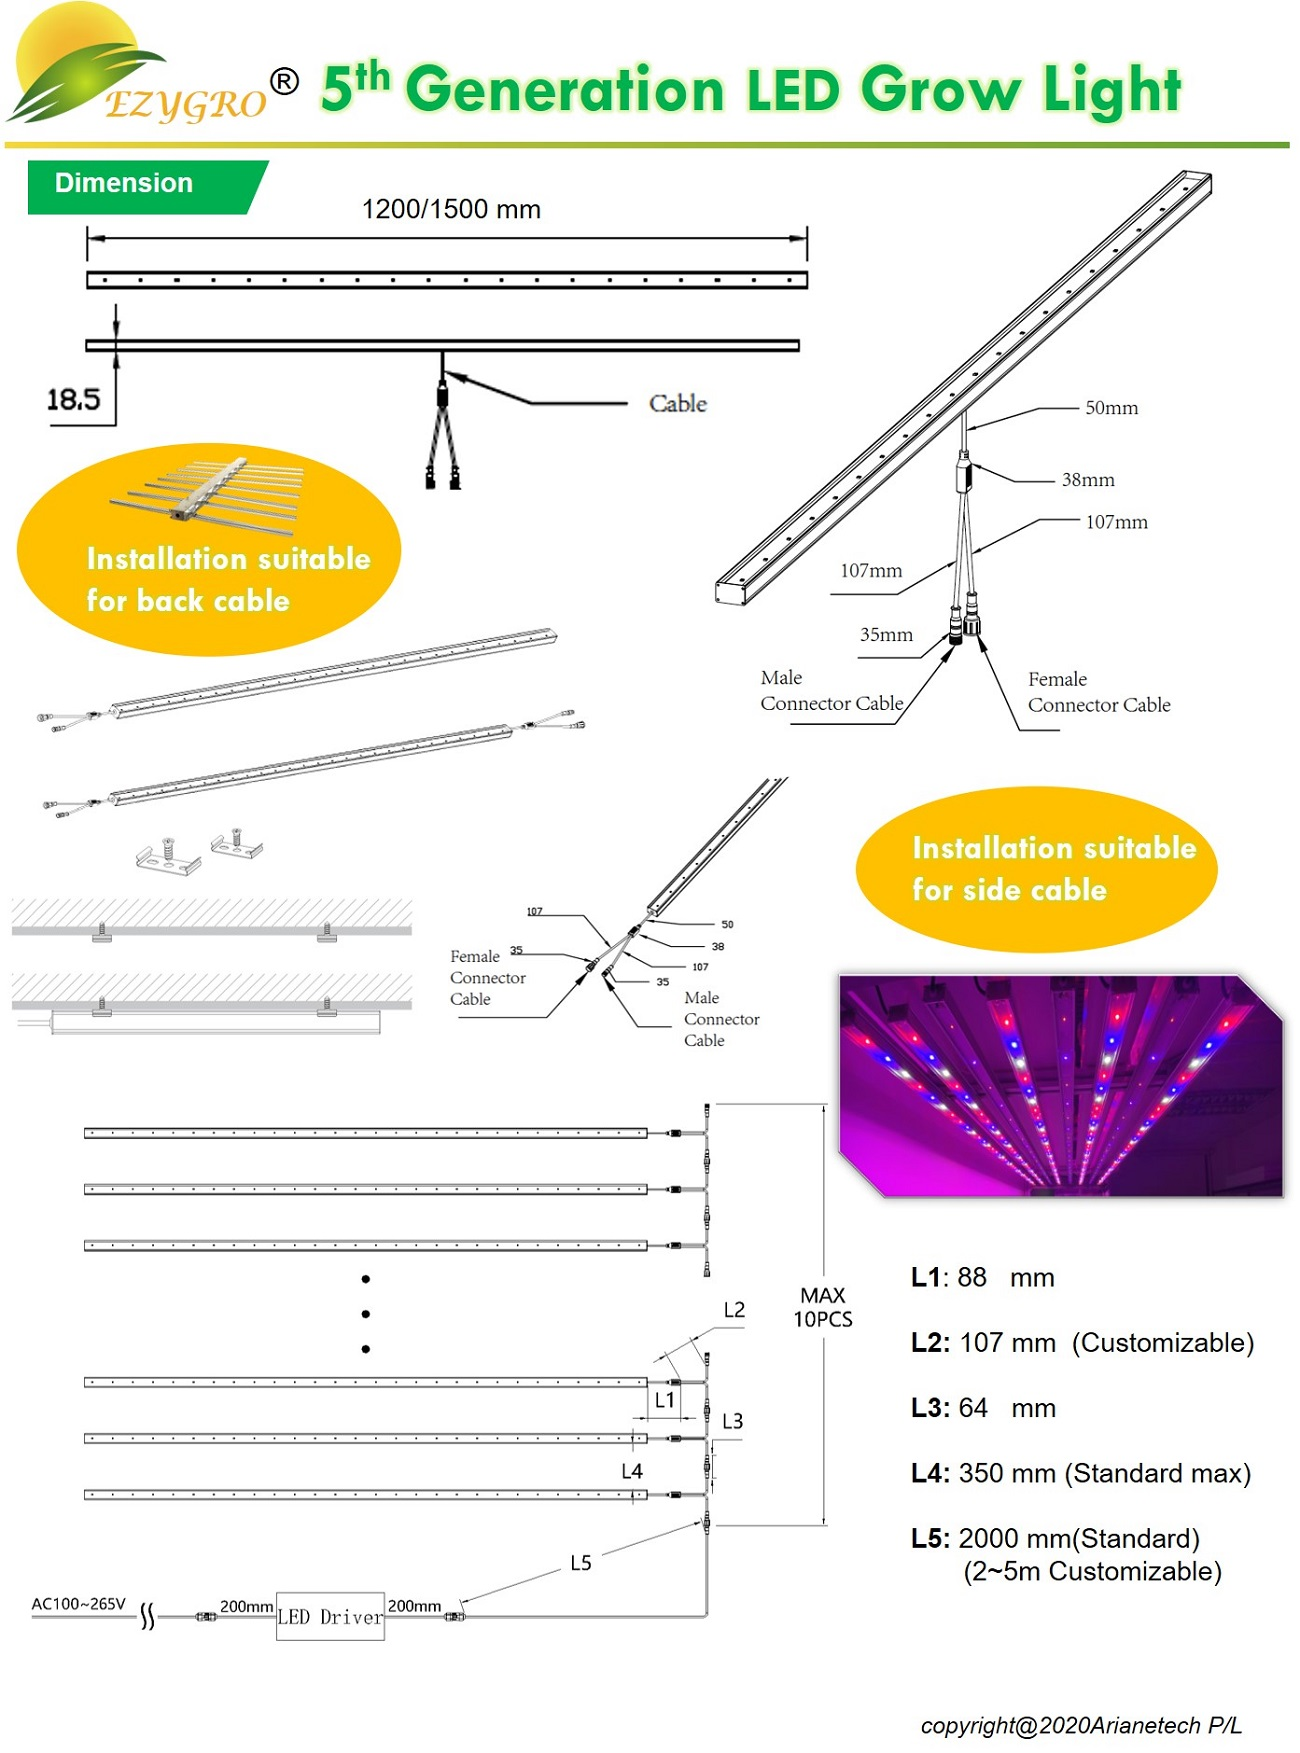 5 generation ezygro led grow light bar for crops in vertical farming 15